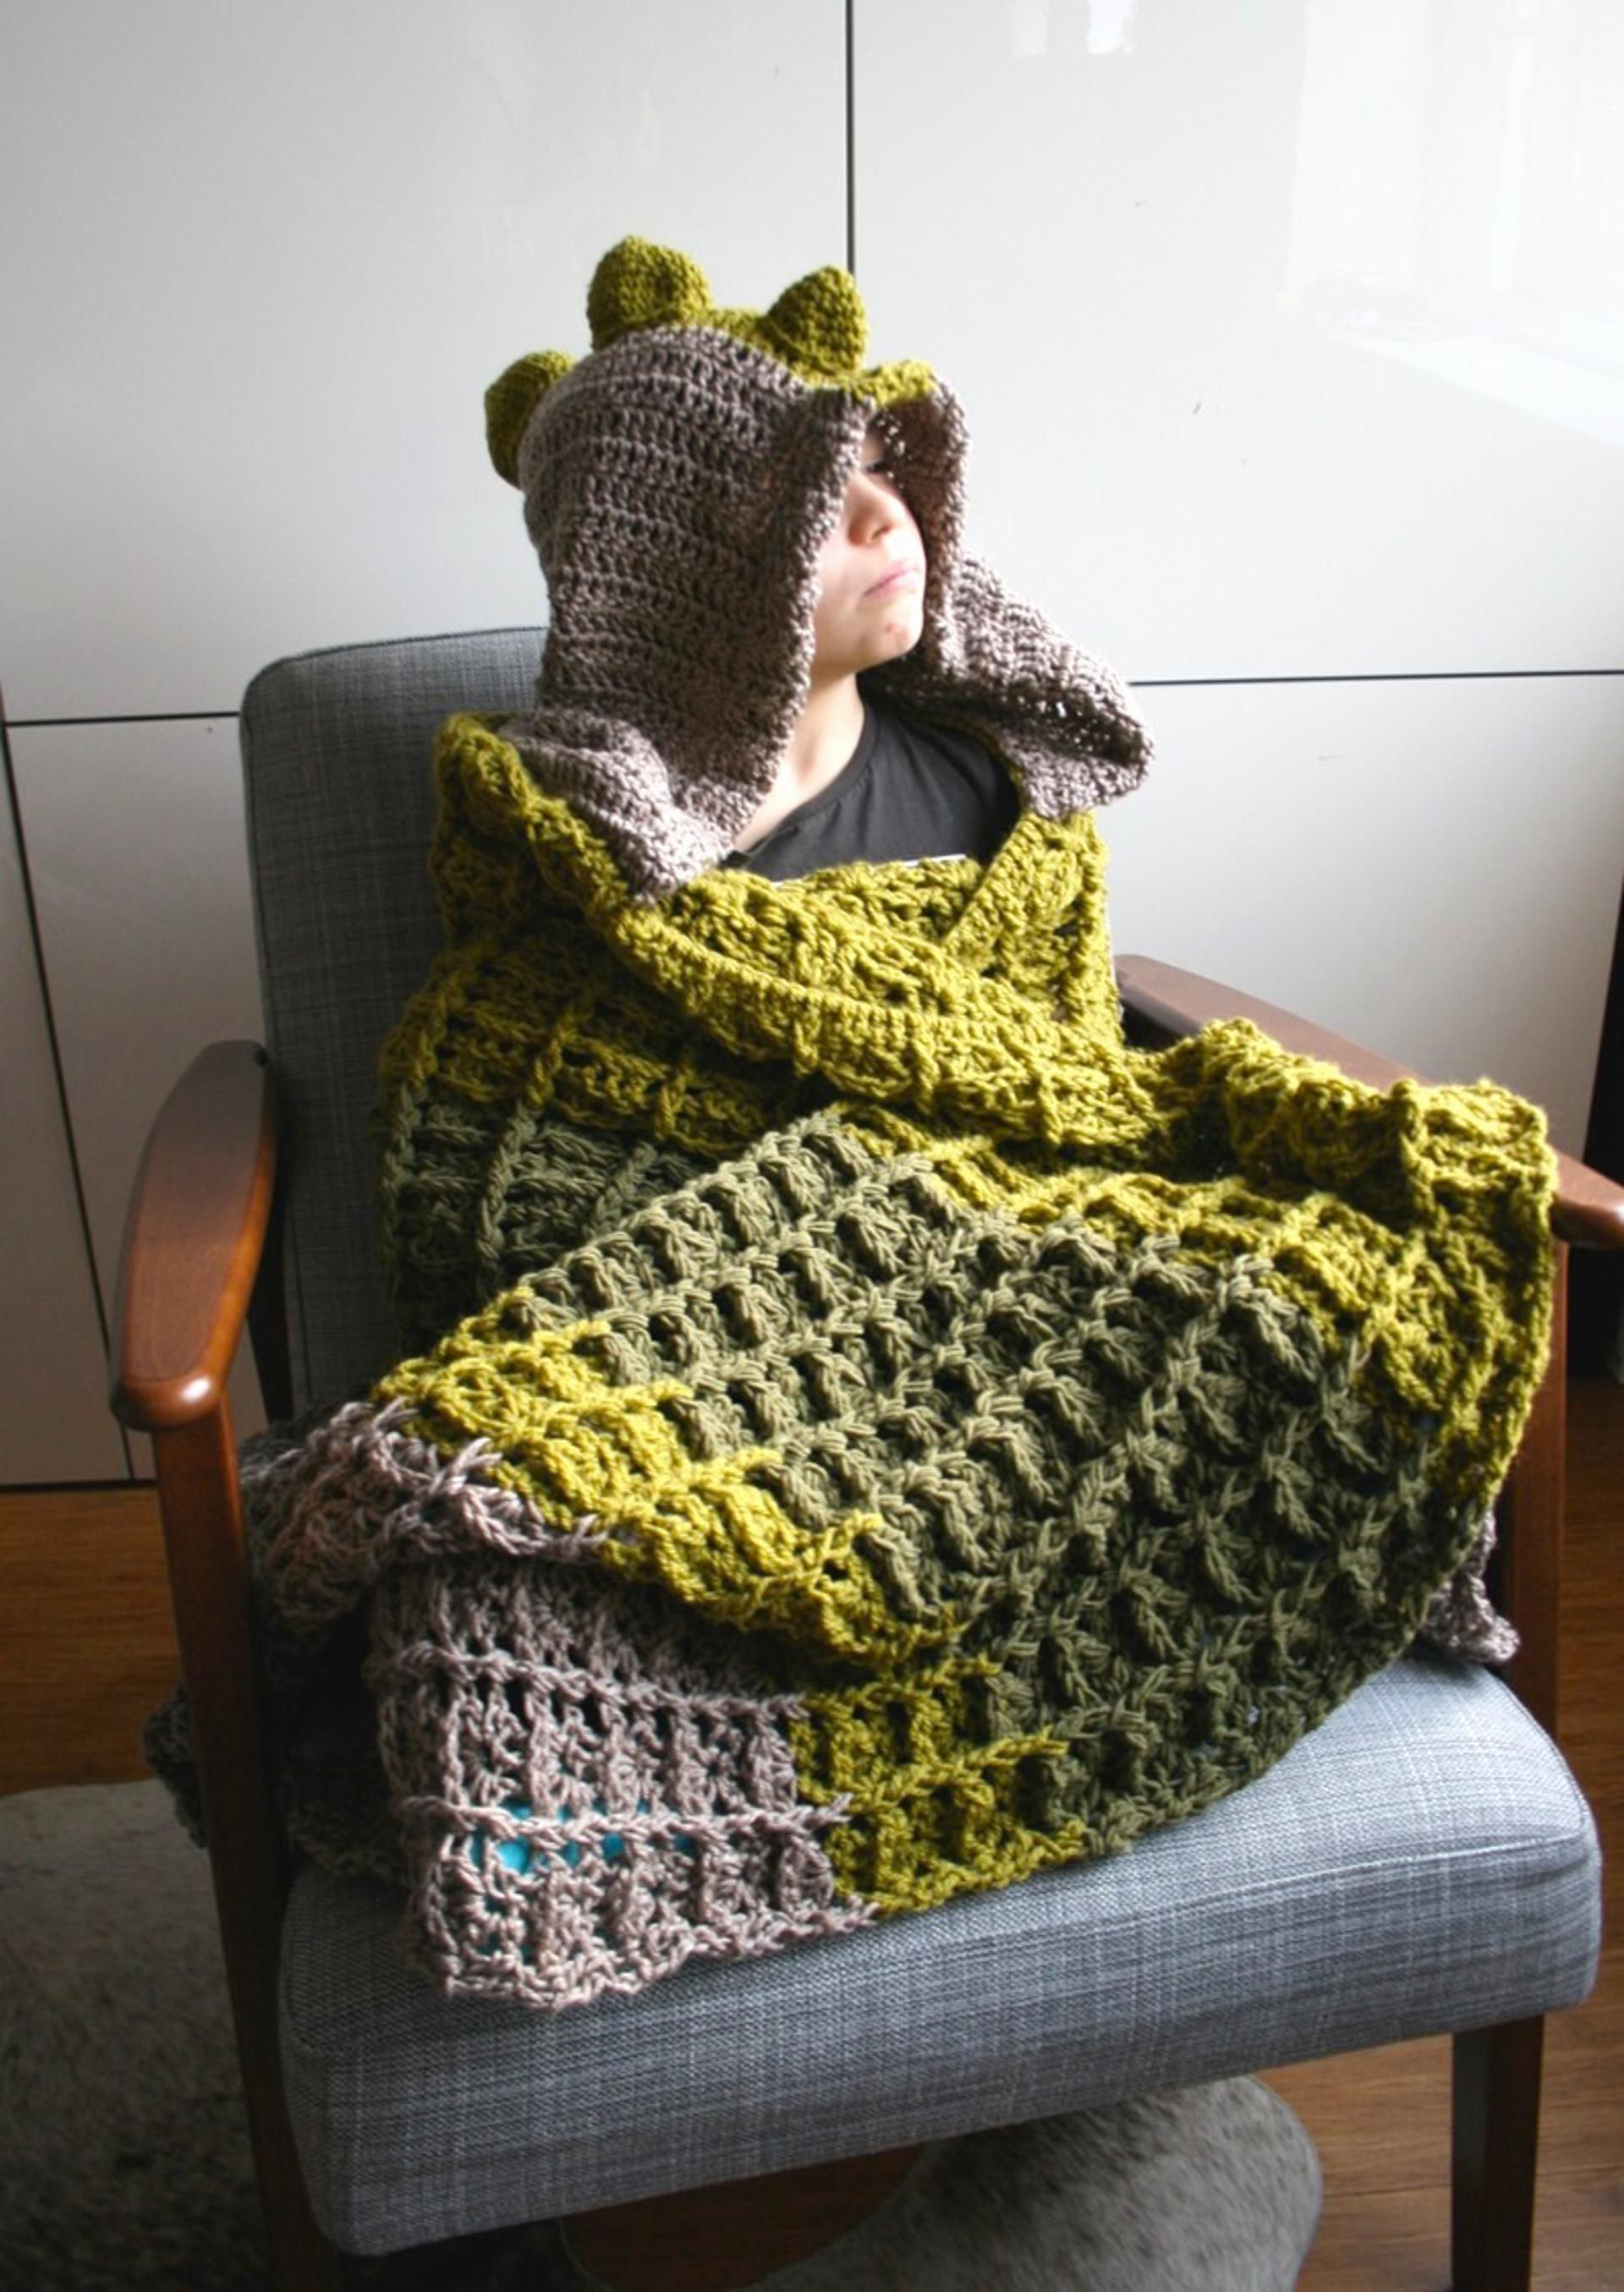 10 Crochet Hooded Blanket Patterns For Kids And Adults Crochet